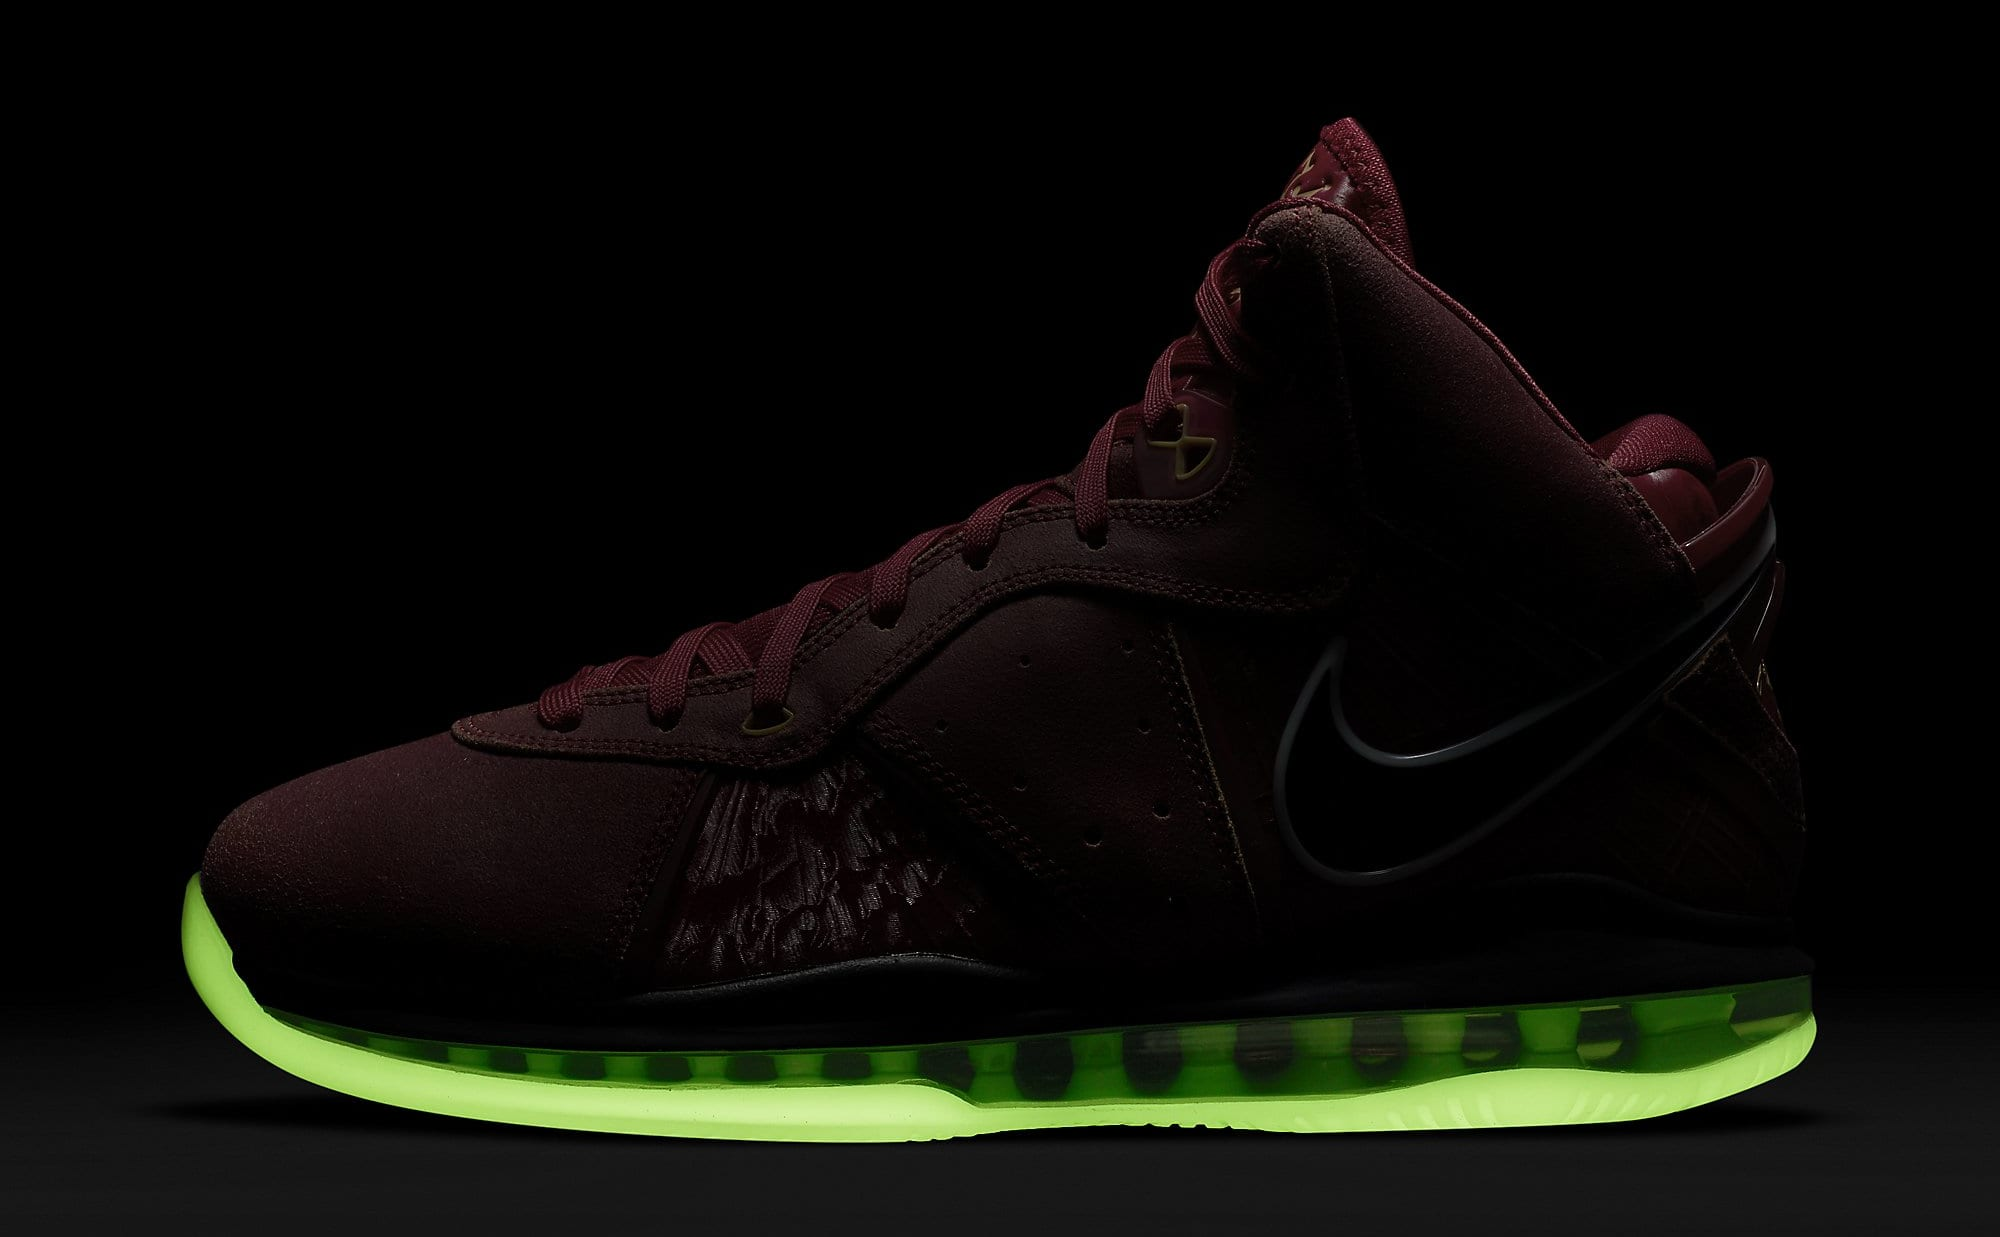 Nike LeBron 8 QS 'Gym Red' CT5330-600 Outsole